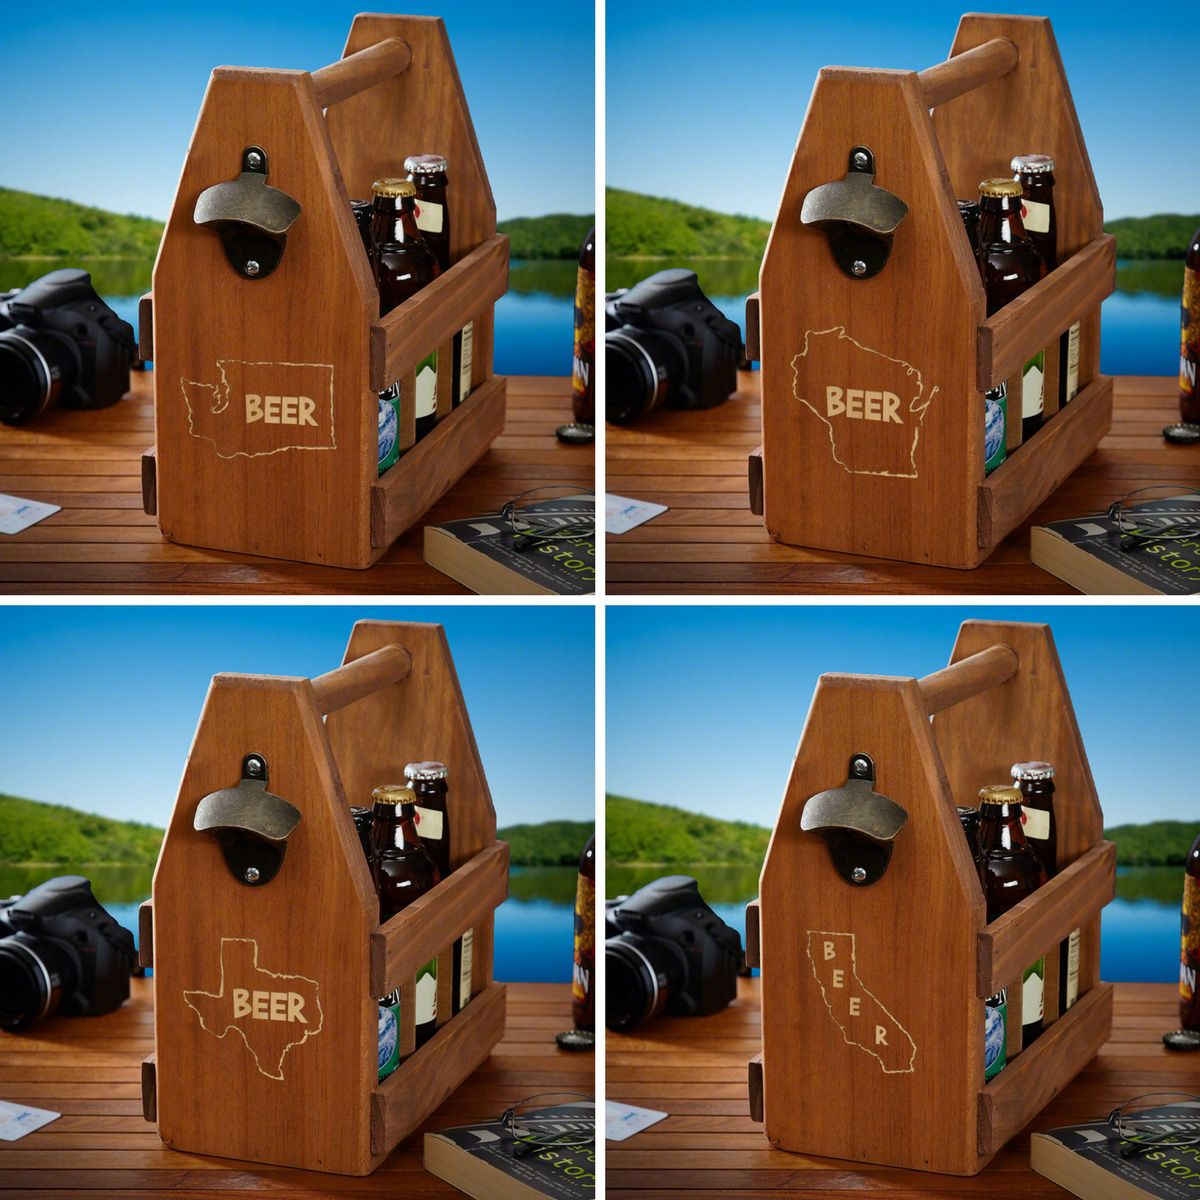 Home State Wooden Beer Tote - 11 States Available